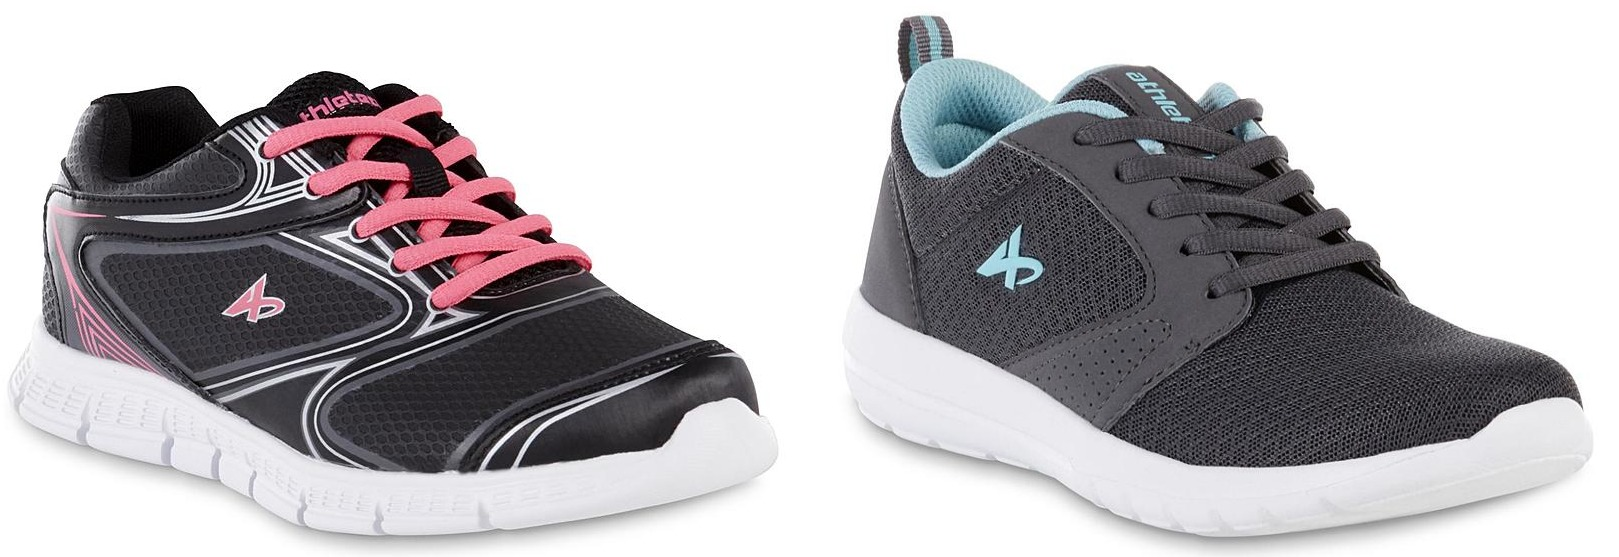 Kmart: Buy One Get One For $1 Select Sneakers = Running